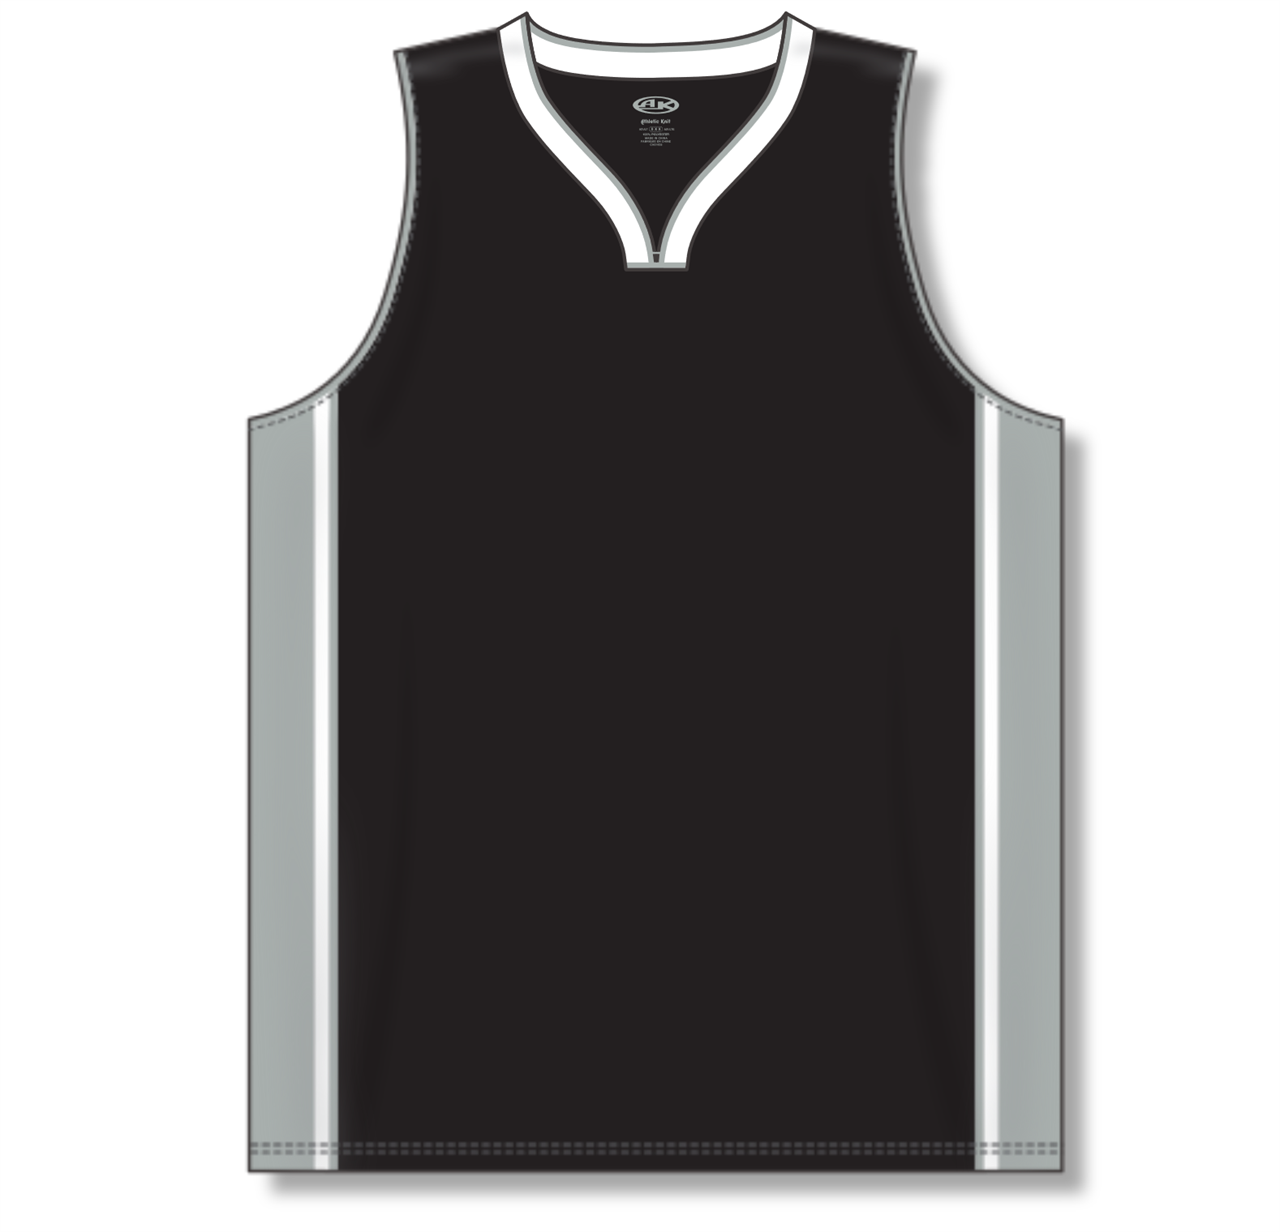 Pin By Andie N Roll On Jersey Basketball Design In 2020 Basketball Design Basketball Jersey Basketball Uniforms Design